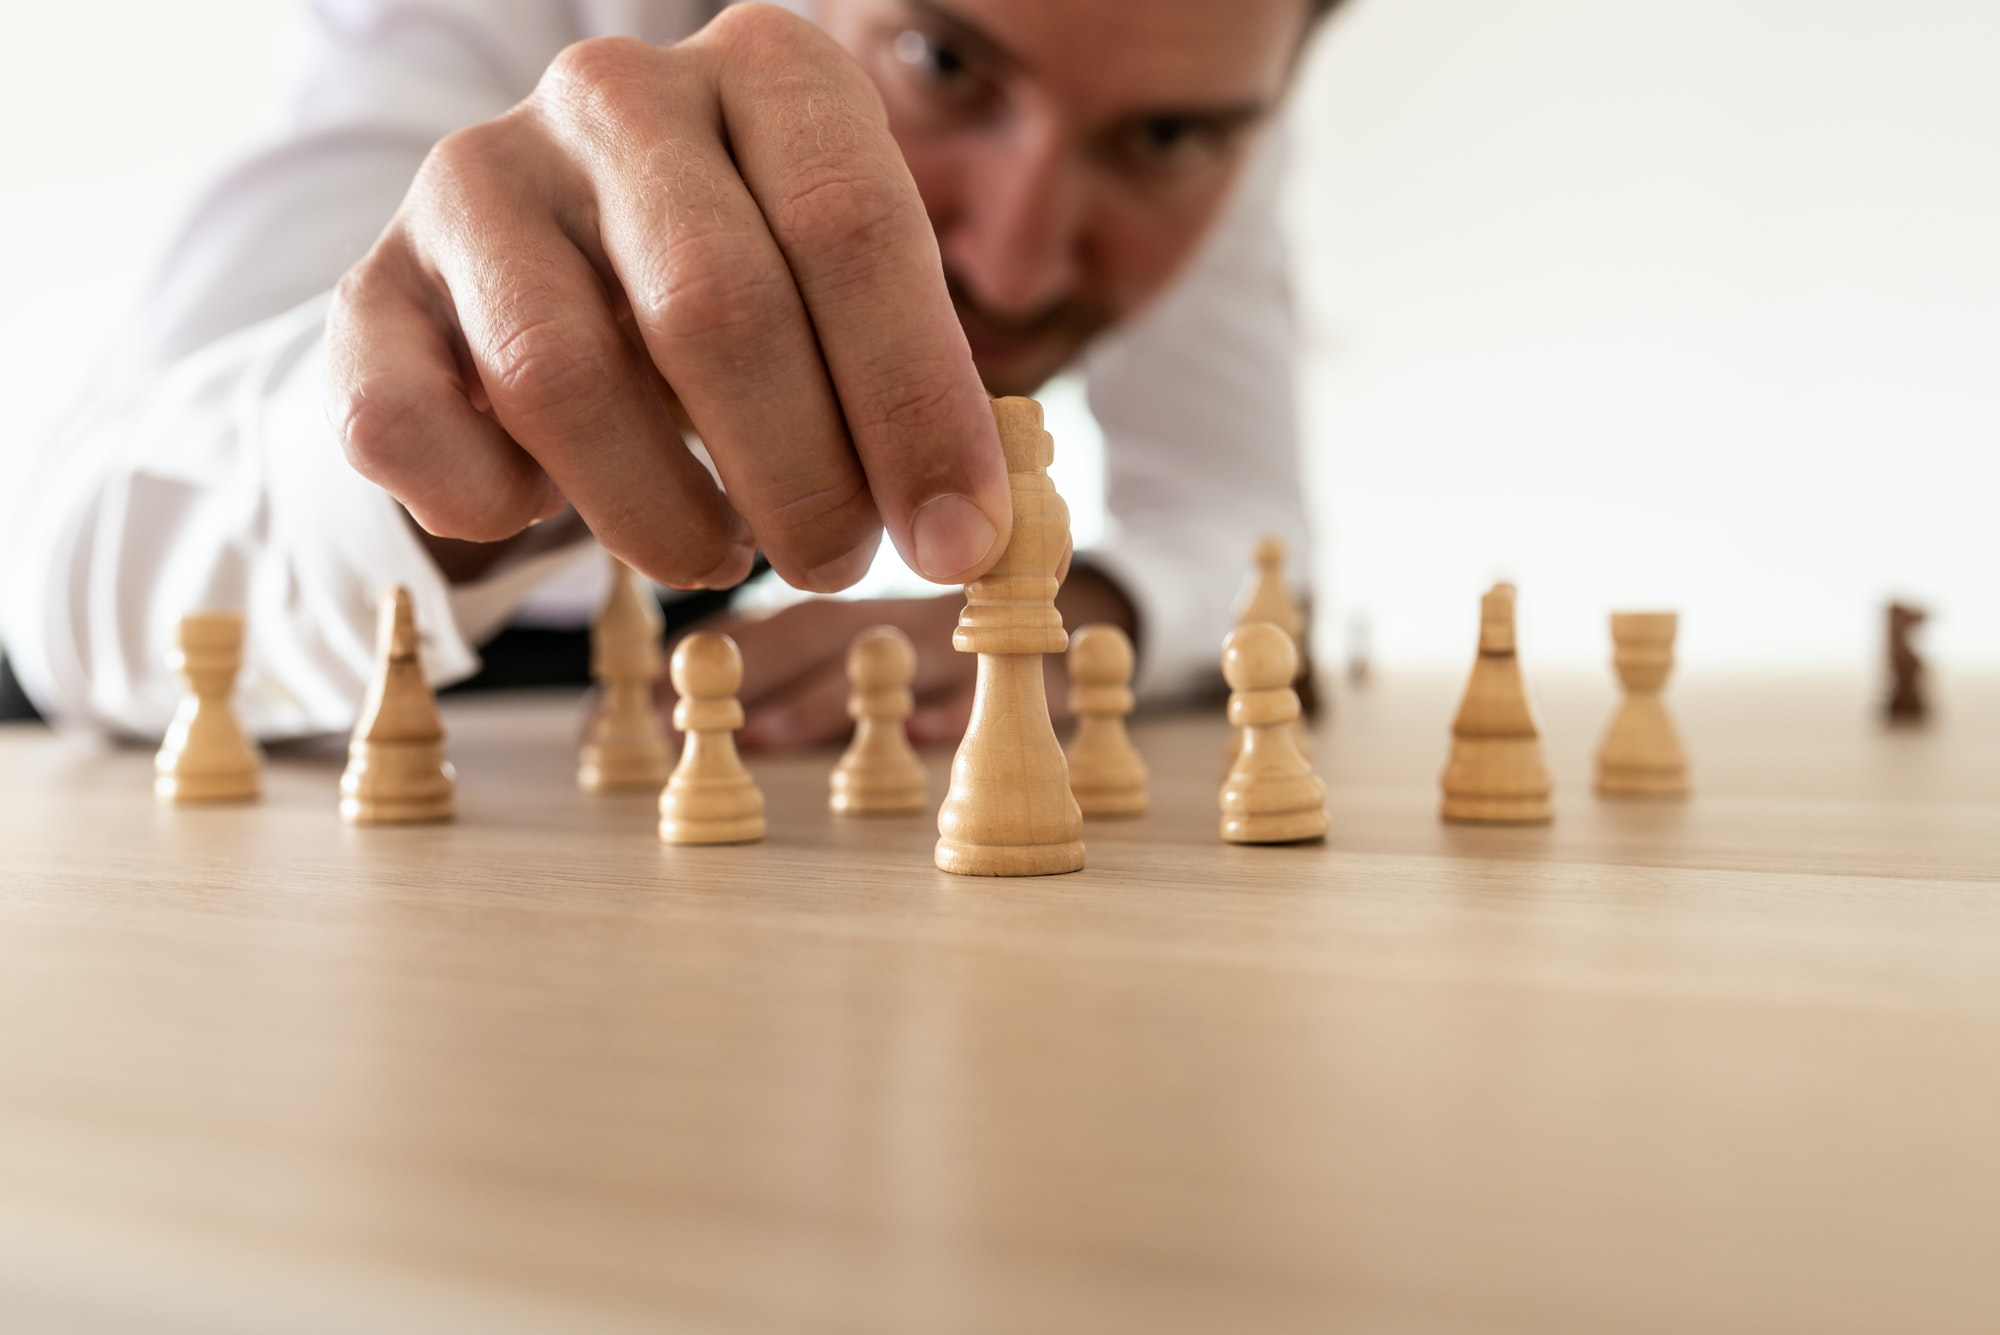 Business leader arranging chess pieces with king in the leading position